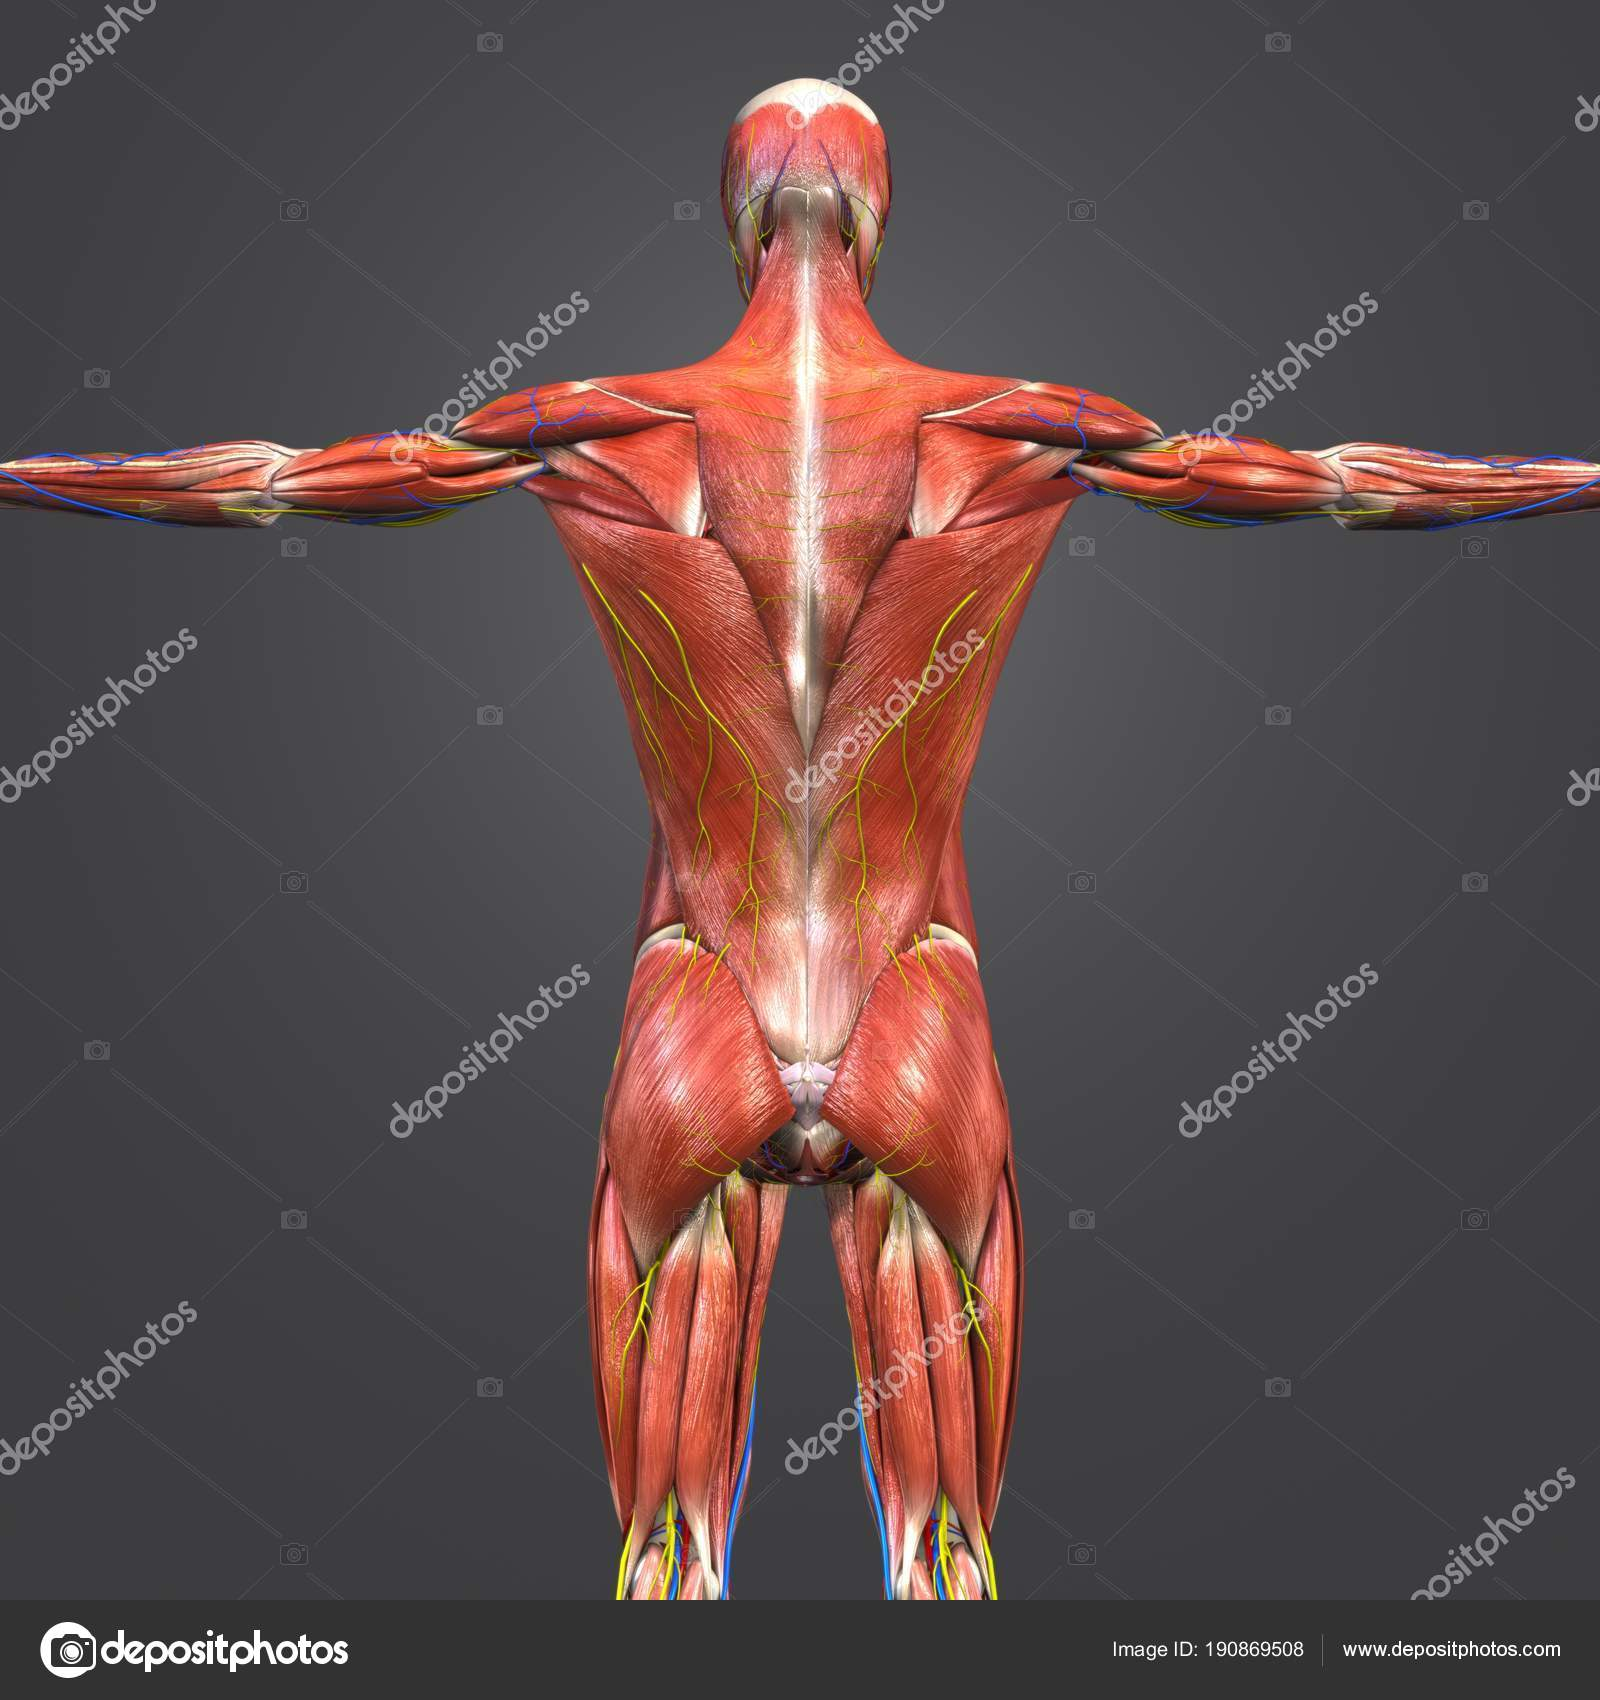 Colorful Medical Illustration Human Muscular Skeletal Anatomy